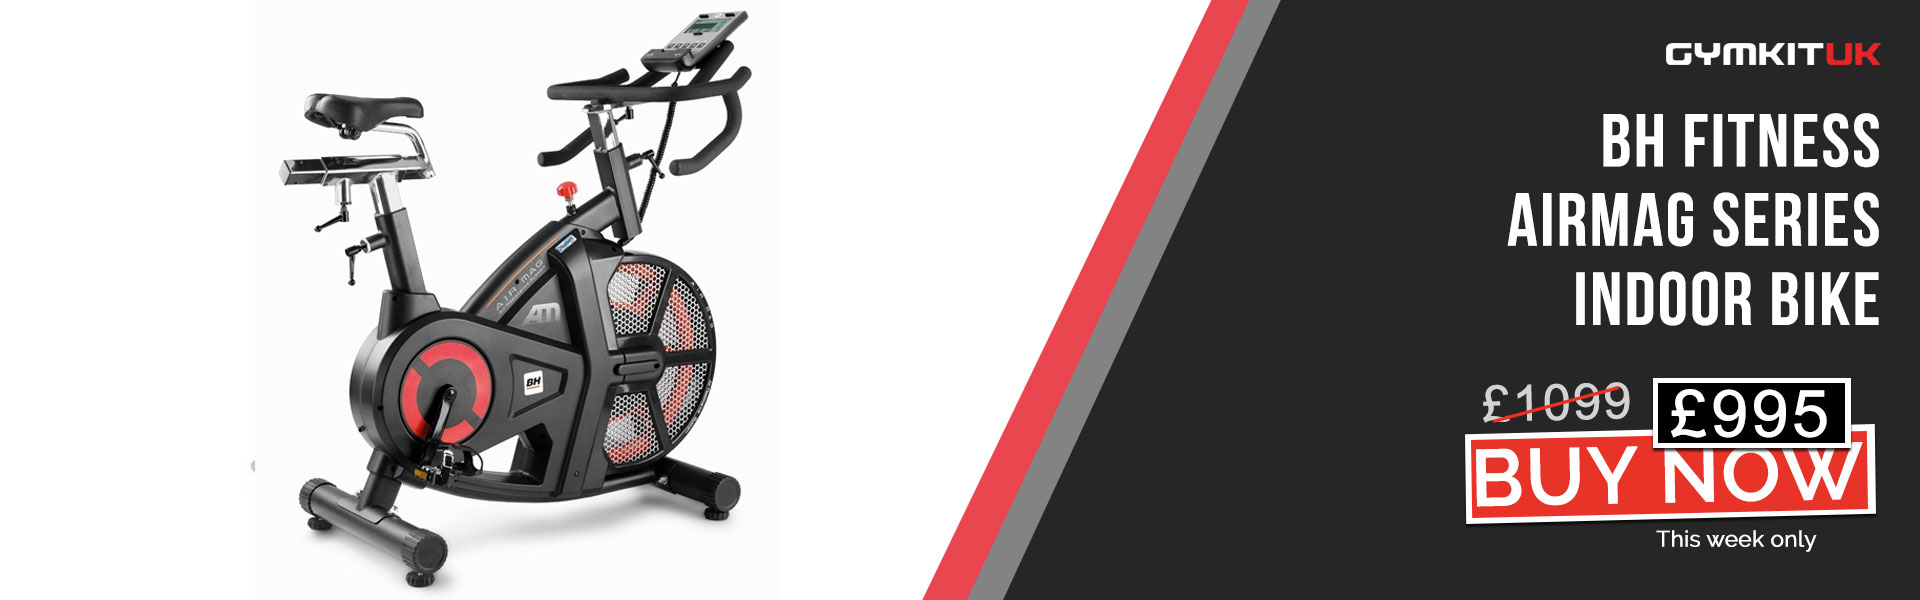 BH Fitness Airmag Indoor Bike